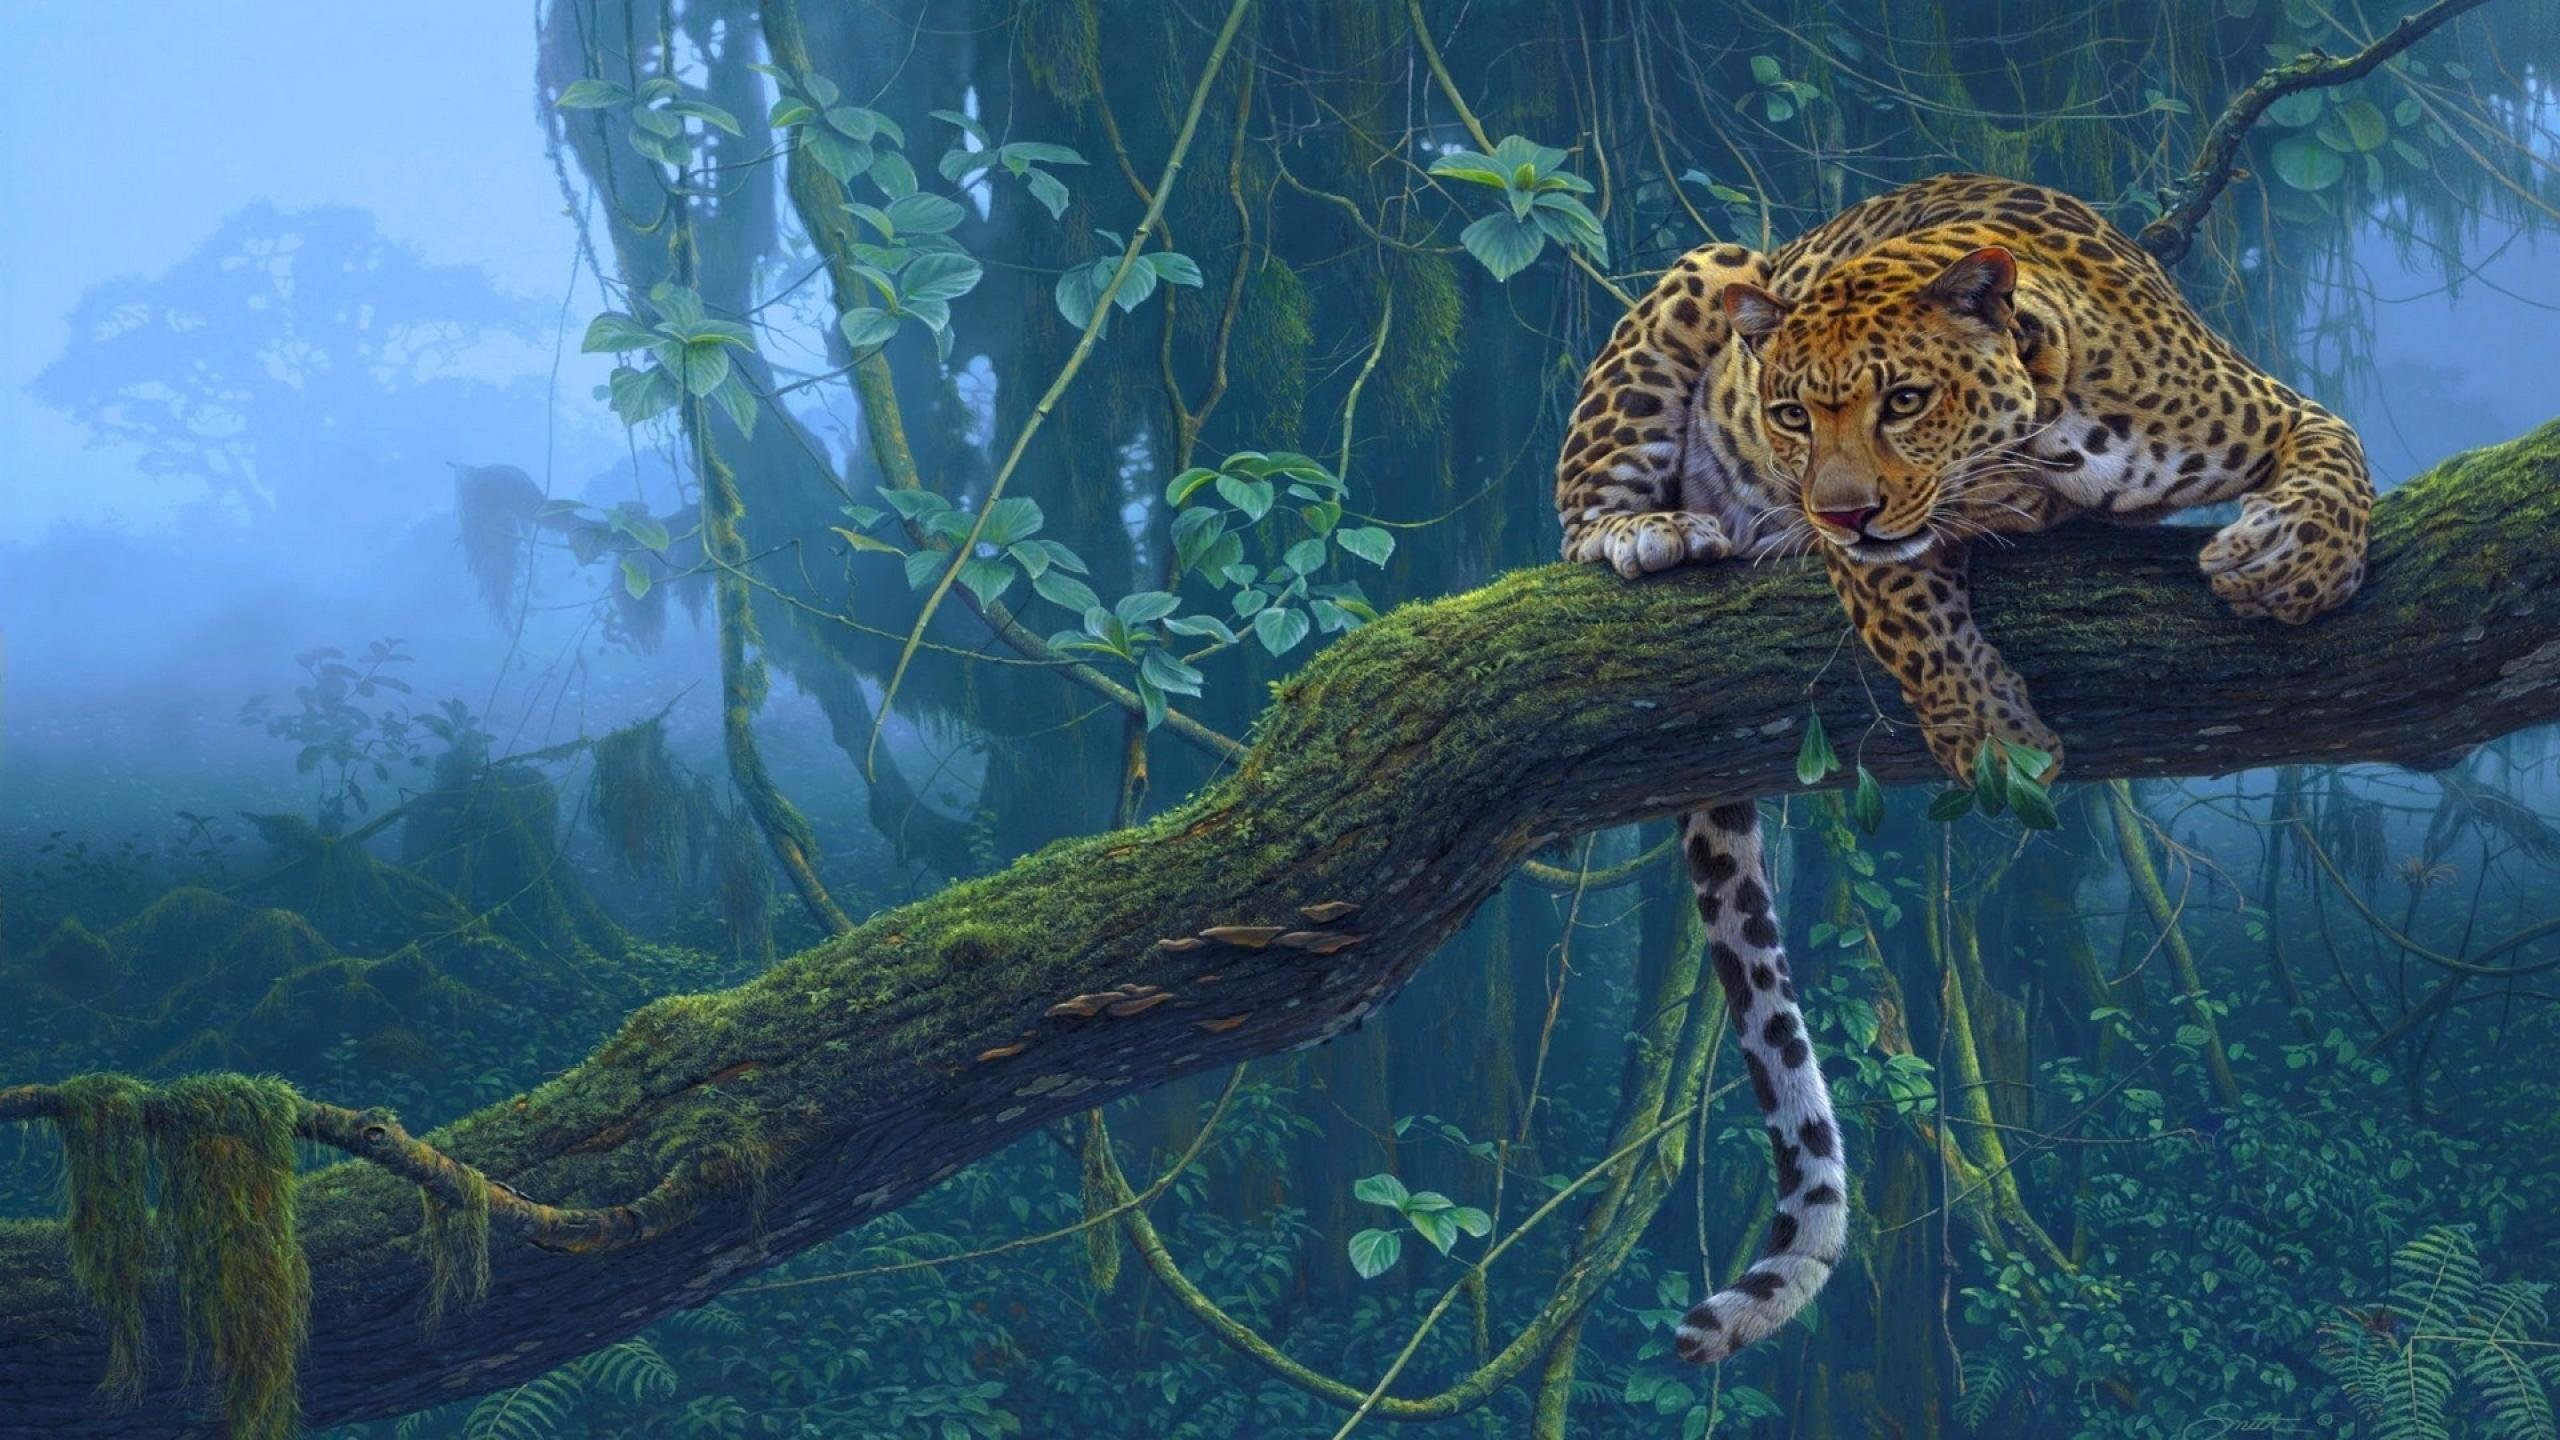 Awesome Leopard free wallpaper ID:448447 for hd 2560x1440 desktop